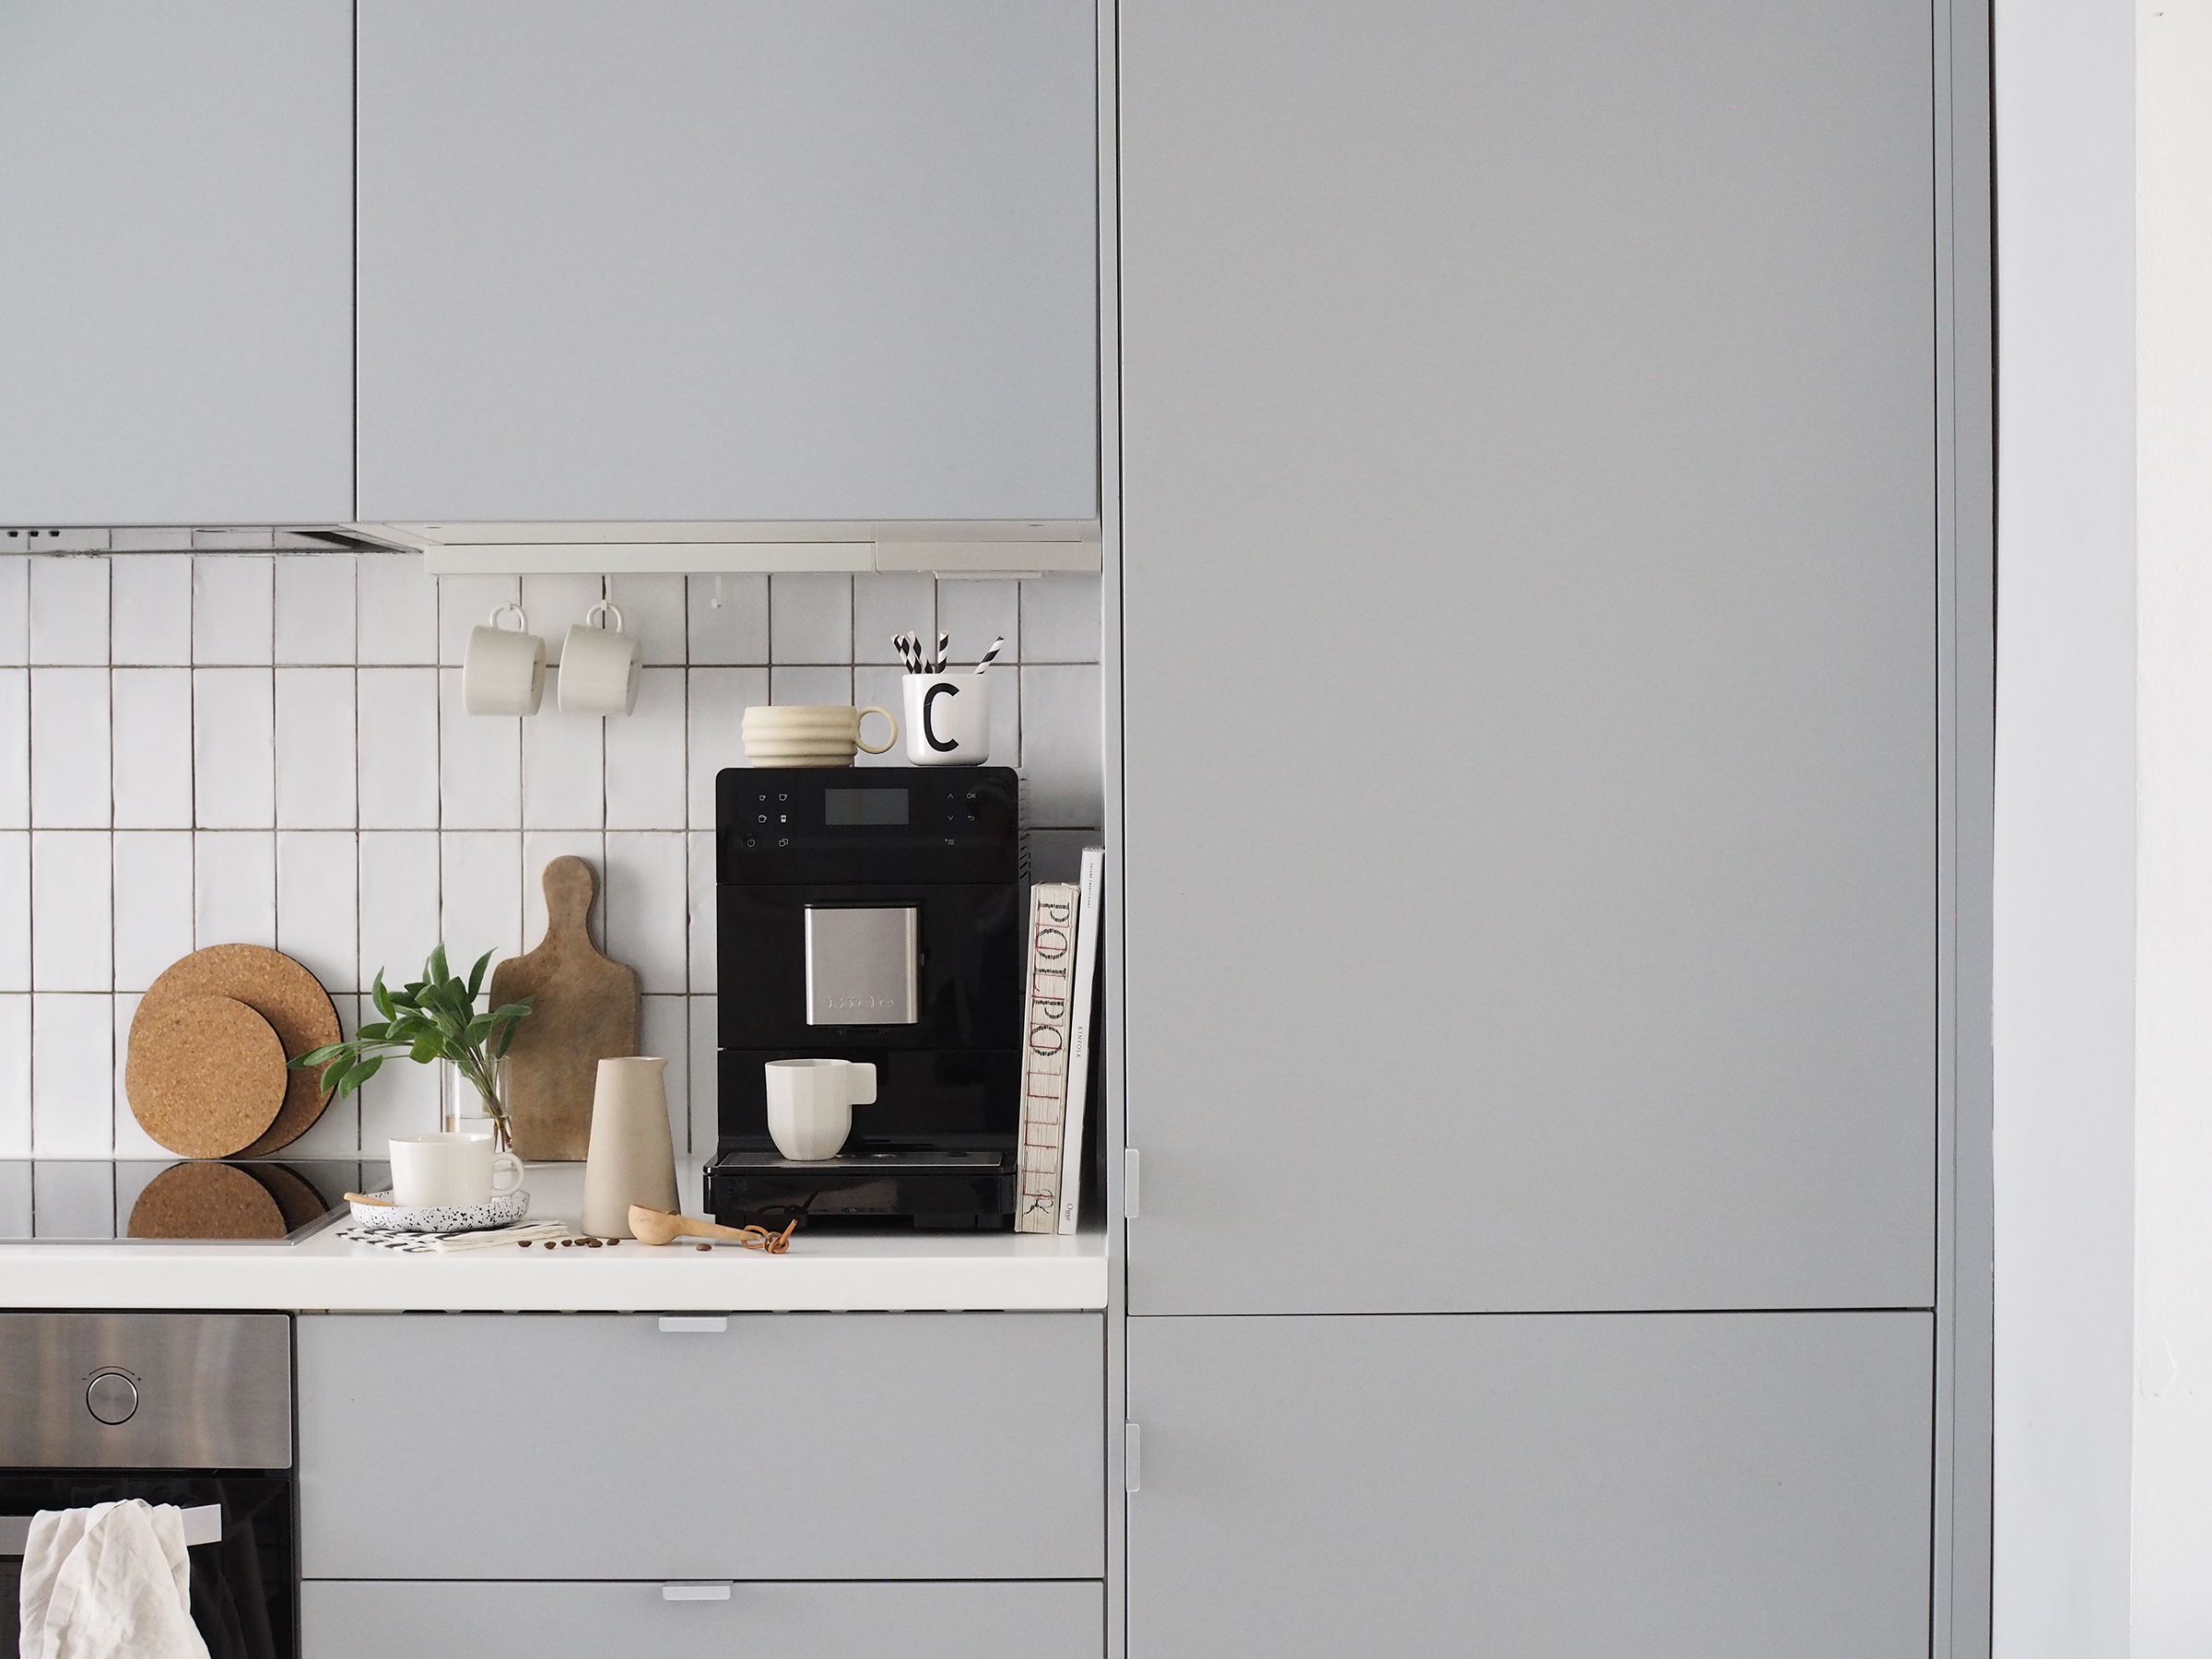 Tag Scandinavian kitchen. Creating barista-style coffee at home \u2013 Miele CM5 coffee machine review [spon] & Scandinavian kitchen Archives - cate st hill